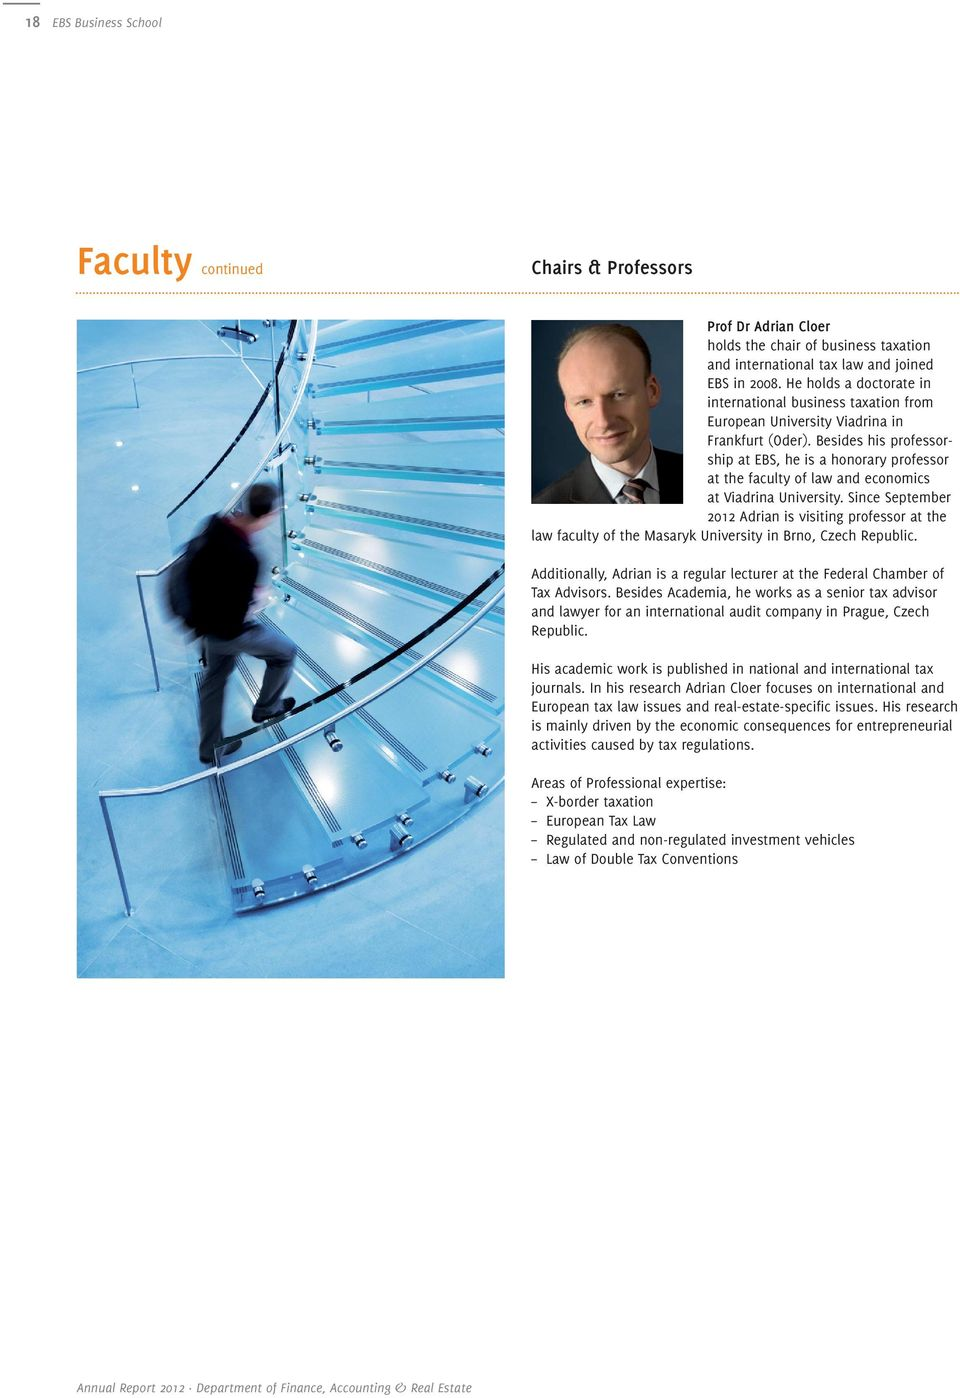 Besides his professorship at EBS, he is a honorary professor at the faculty of law and economics at Viadrina University.